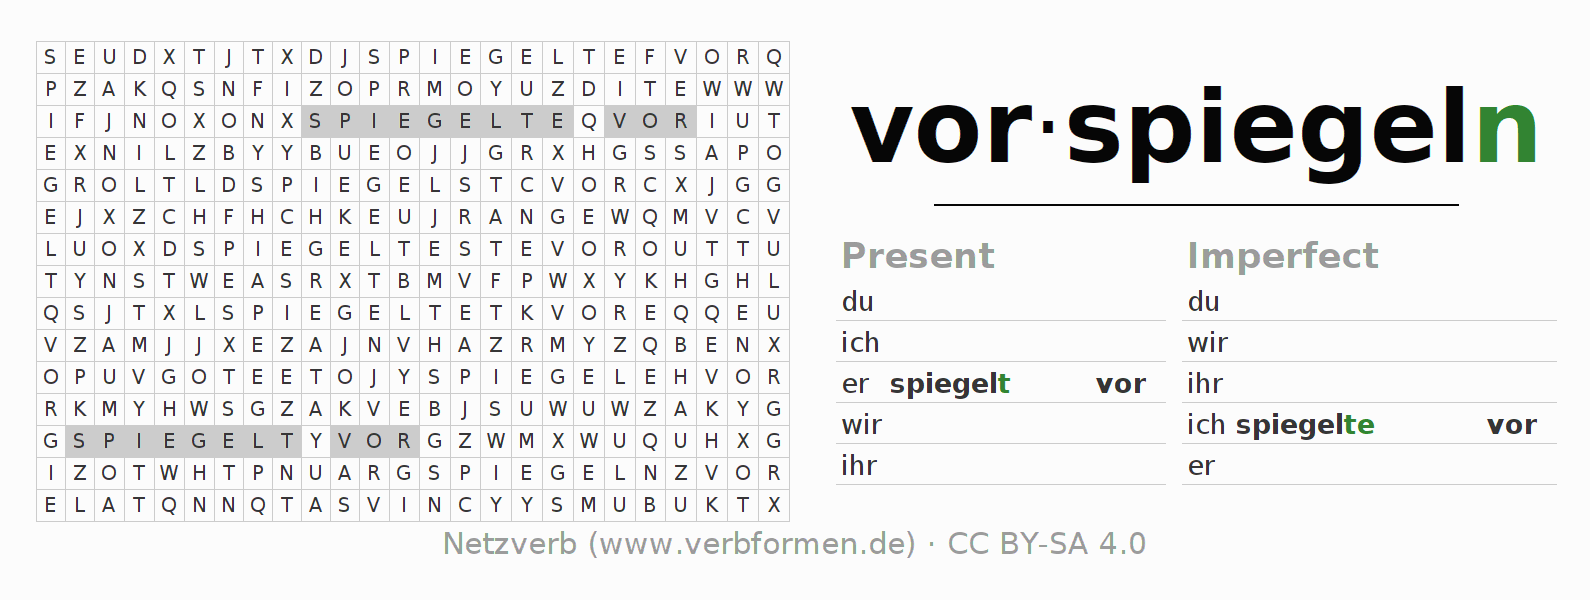 Word search puzzle for the conjugation of the verb vorspiegeln